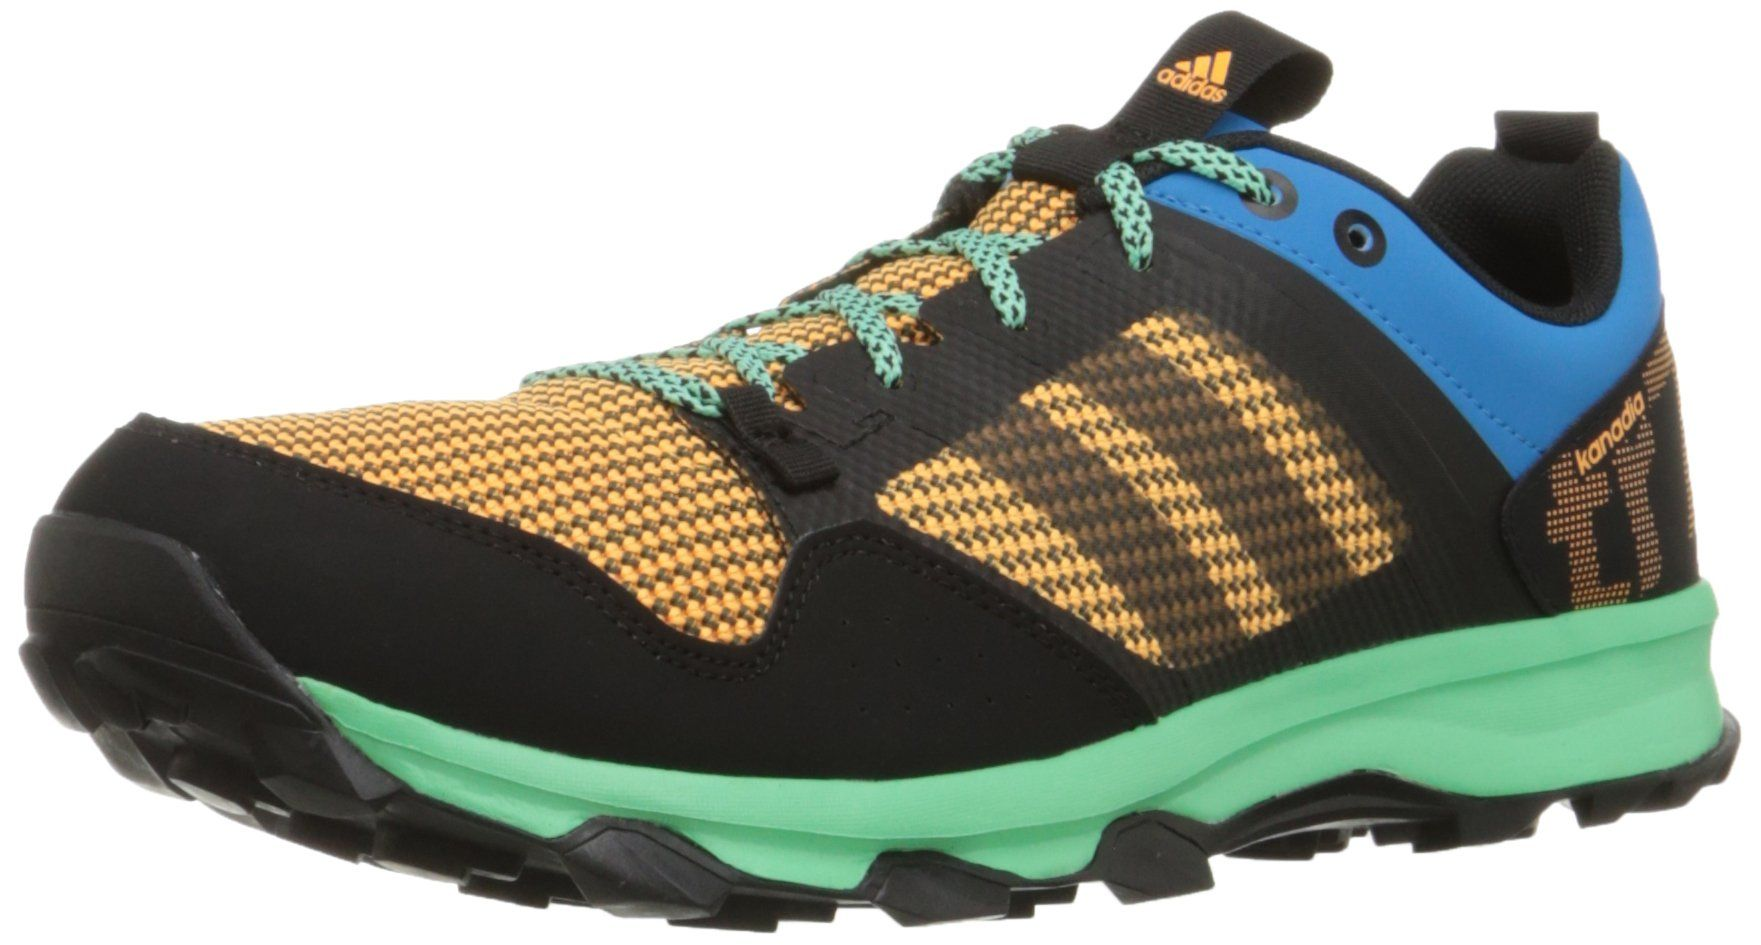 adidas Performance Men's Kanadia 7 TR M Trail Running Shoe,Solar Blue/Black/ Gold,8.5 M US. Lace-up trail running shoe with synthetic overlays, ...